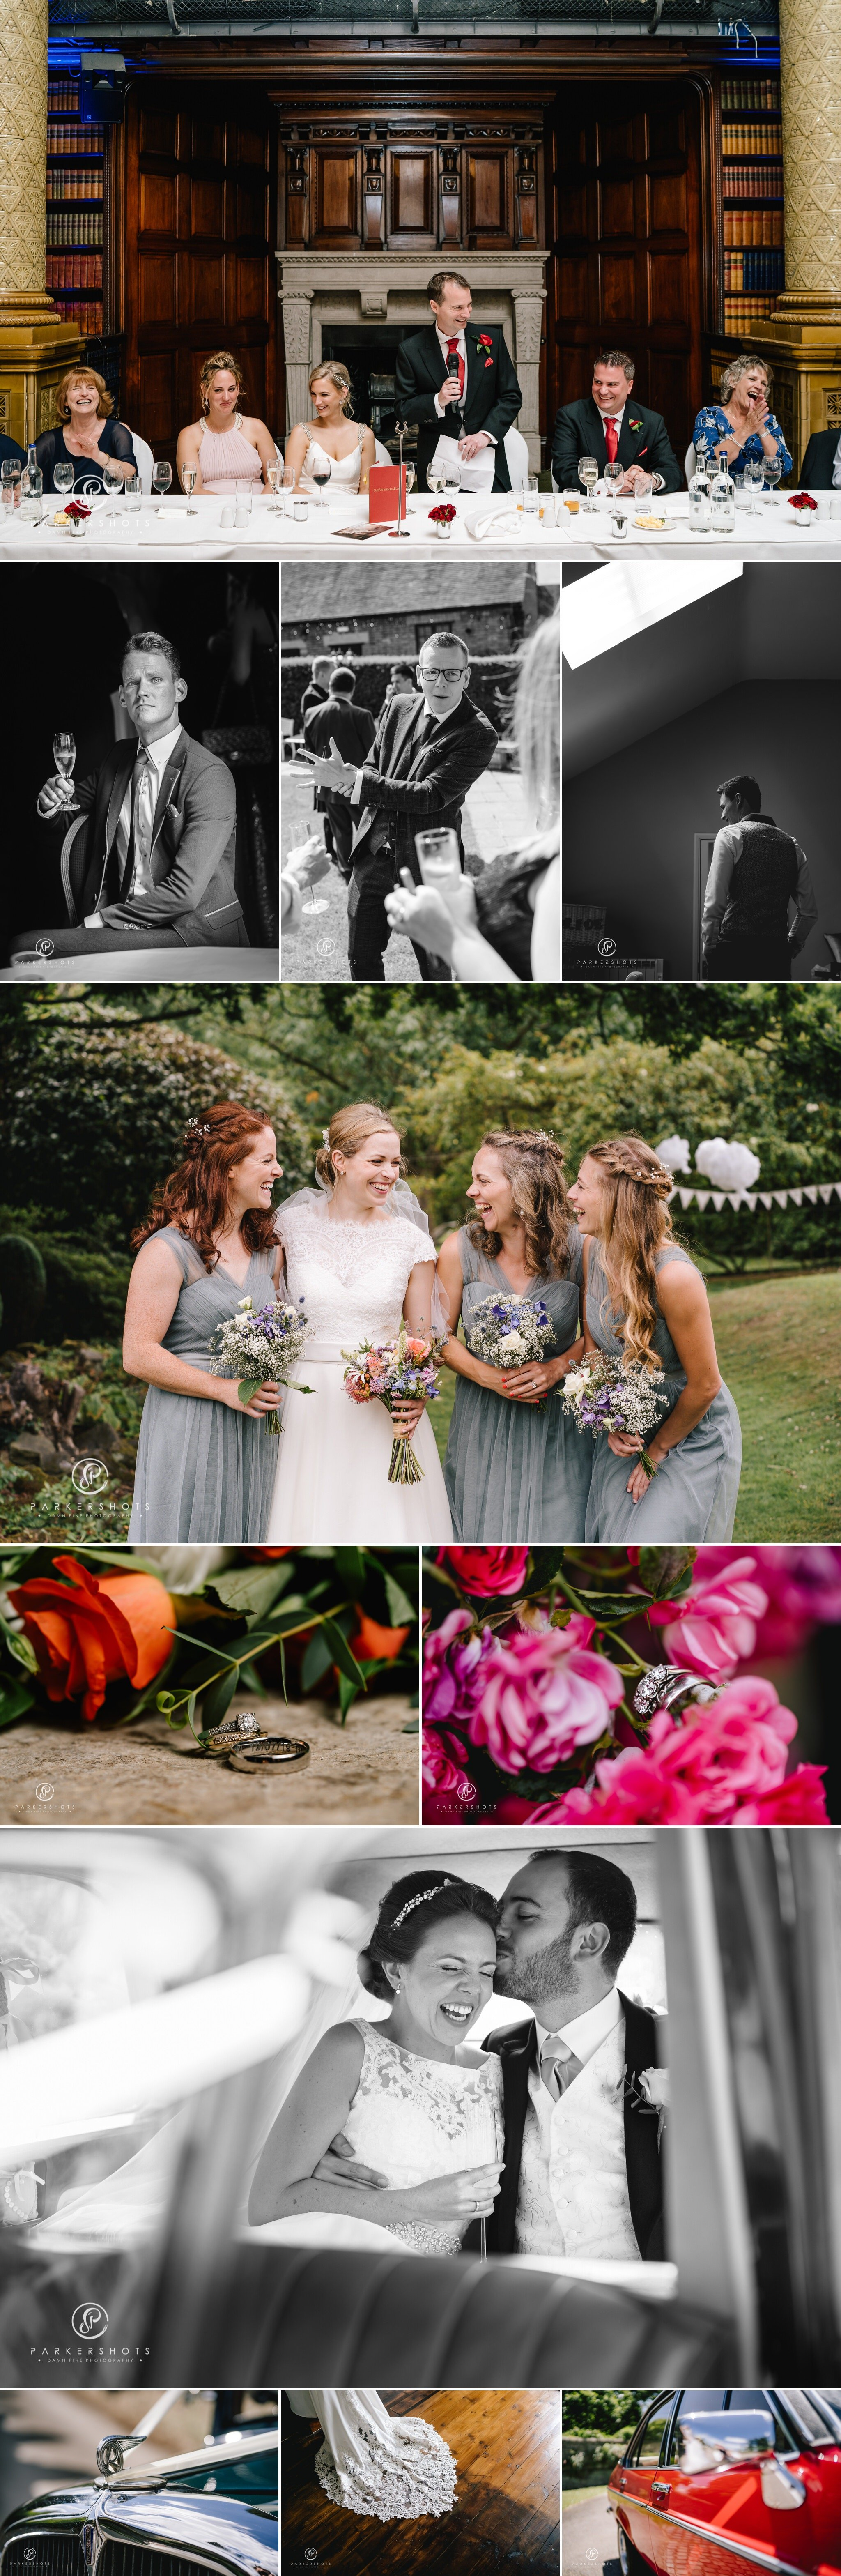 Best of Timeless Wedding Photography 2019